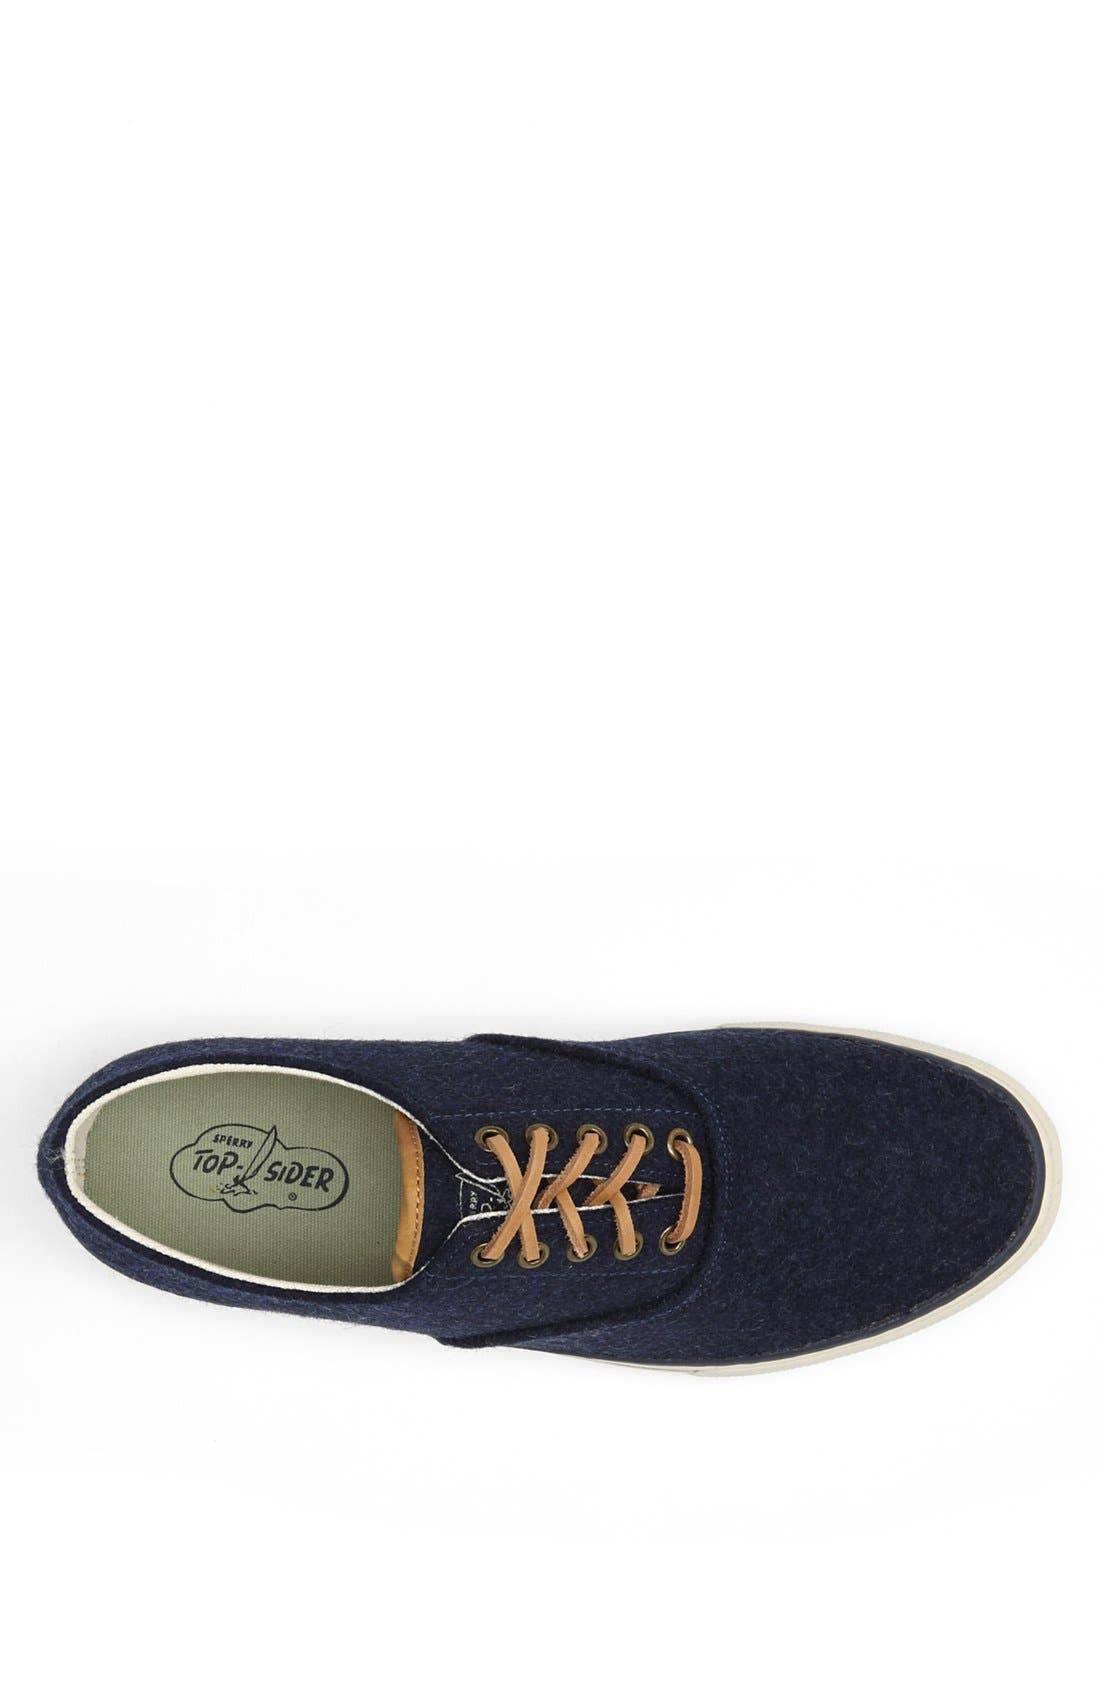 Alternate Image 3  - Sperry Top-Sider® 'American Originals - CVO' Sneaker